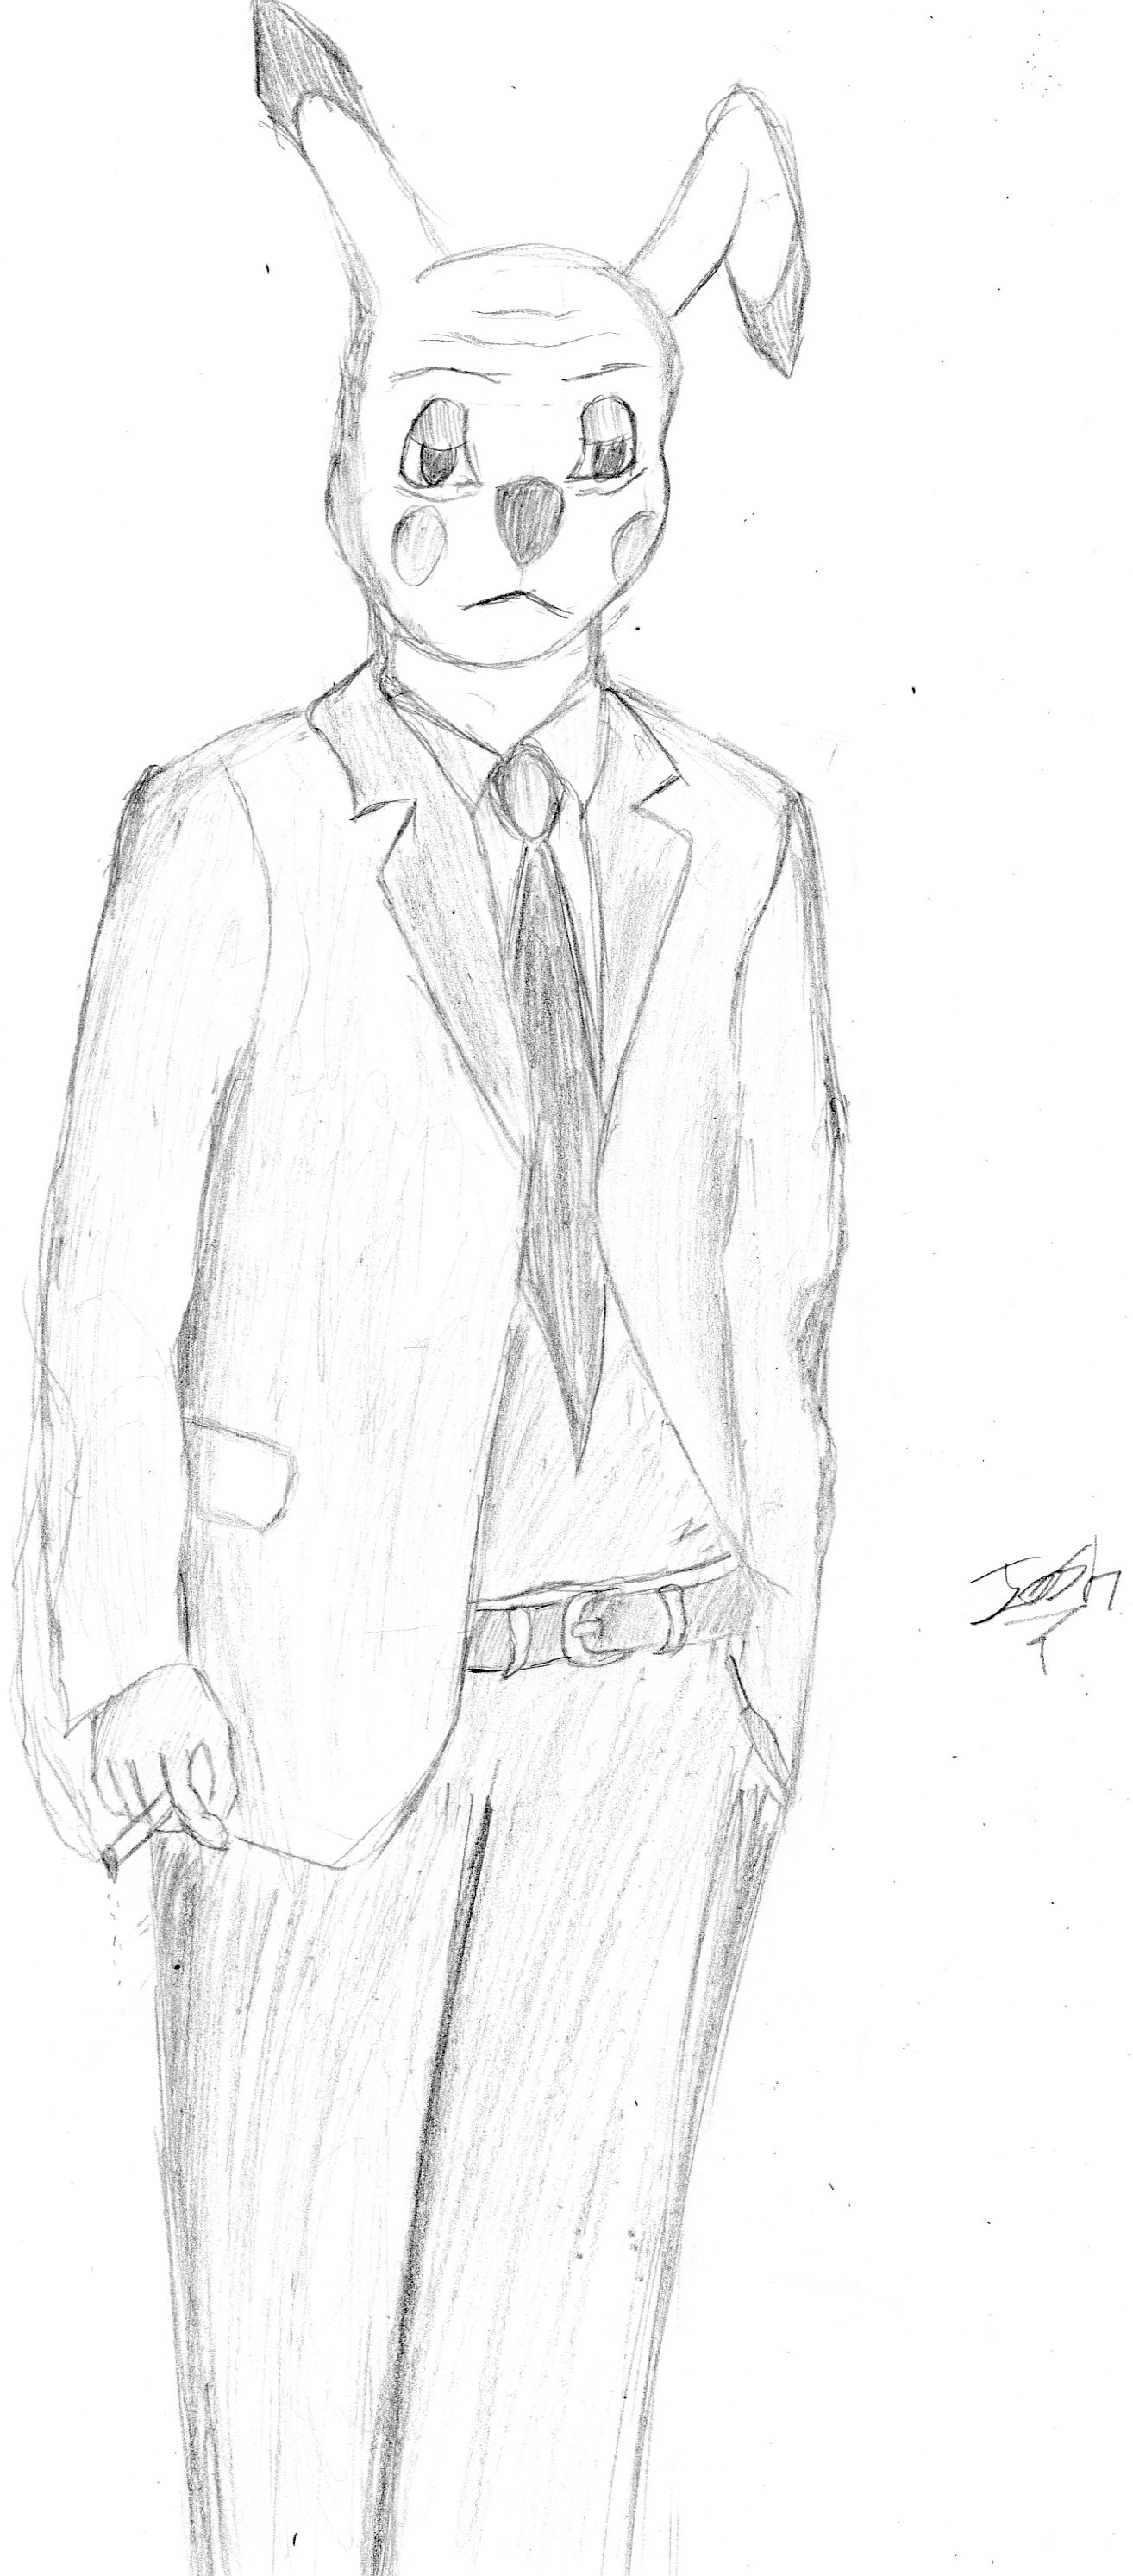 Pikachu in a suit.